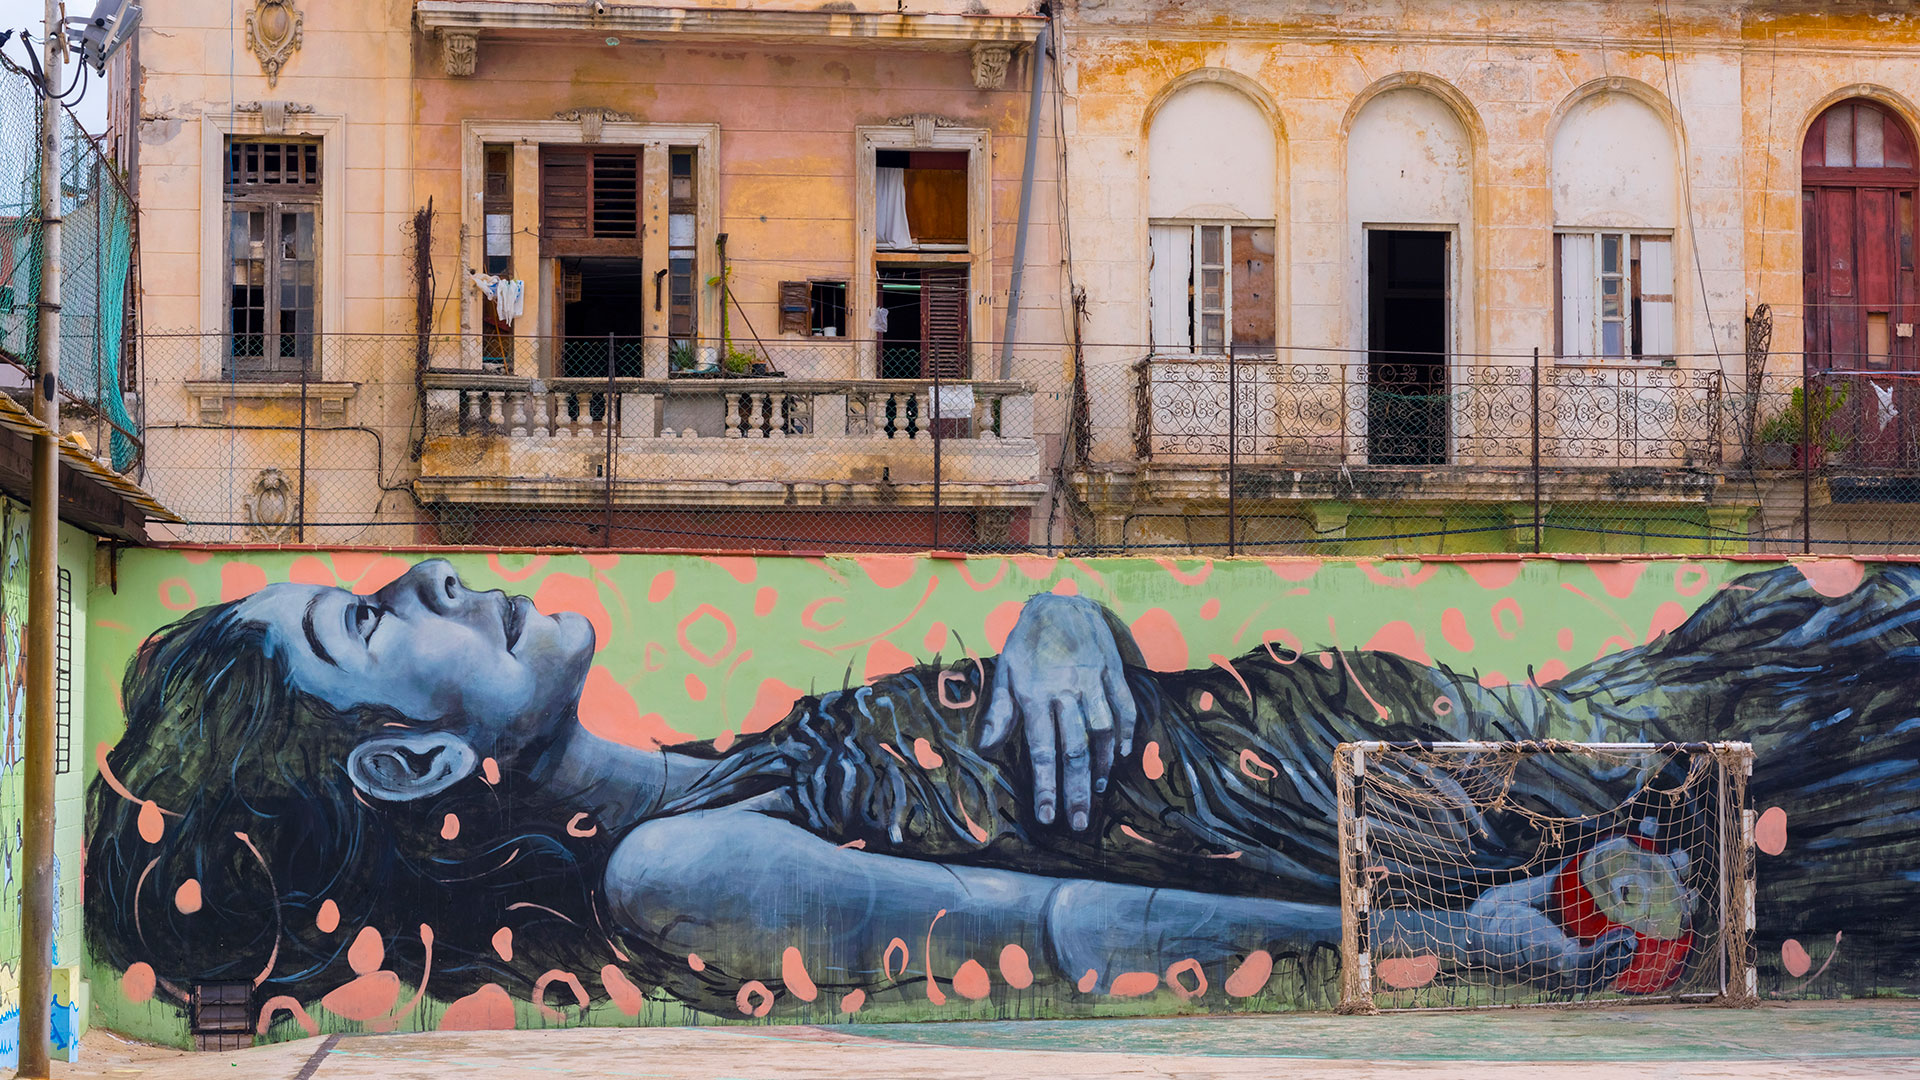 Graffiti painting of a reclining woman in a playground, Old Havana, Cuba